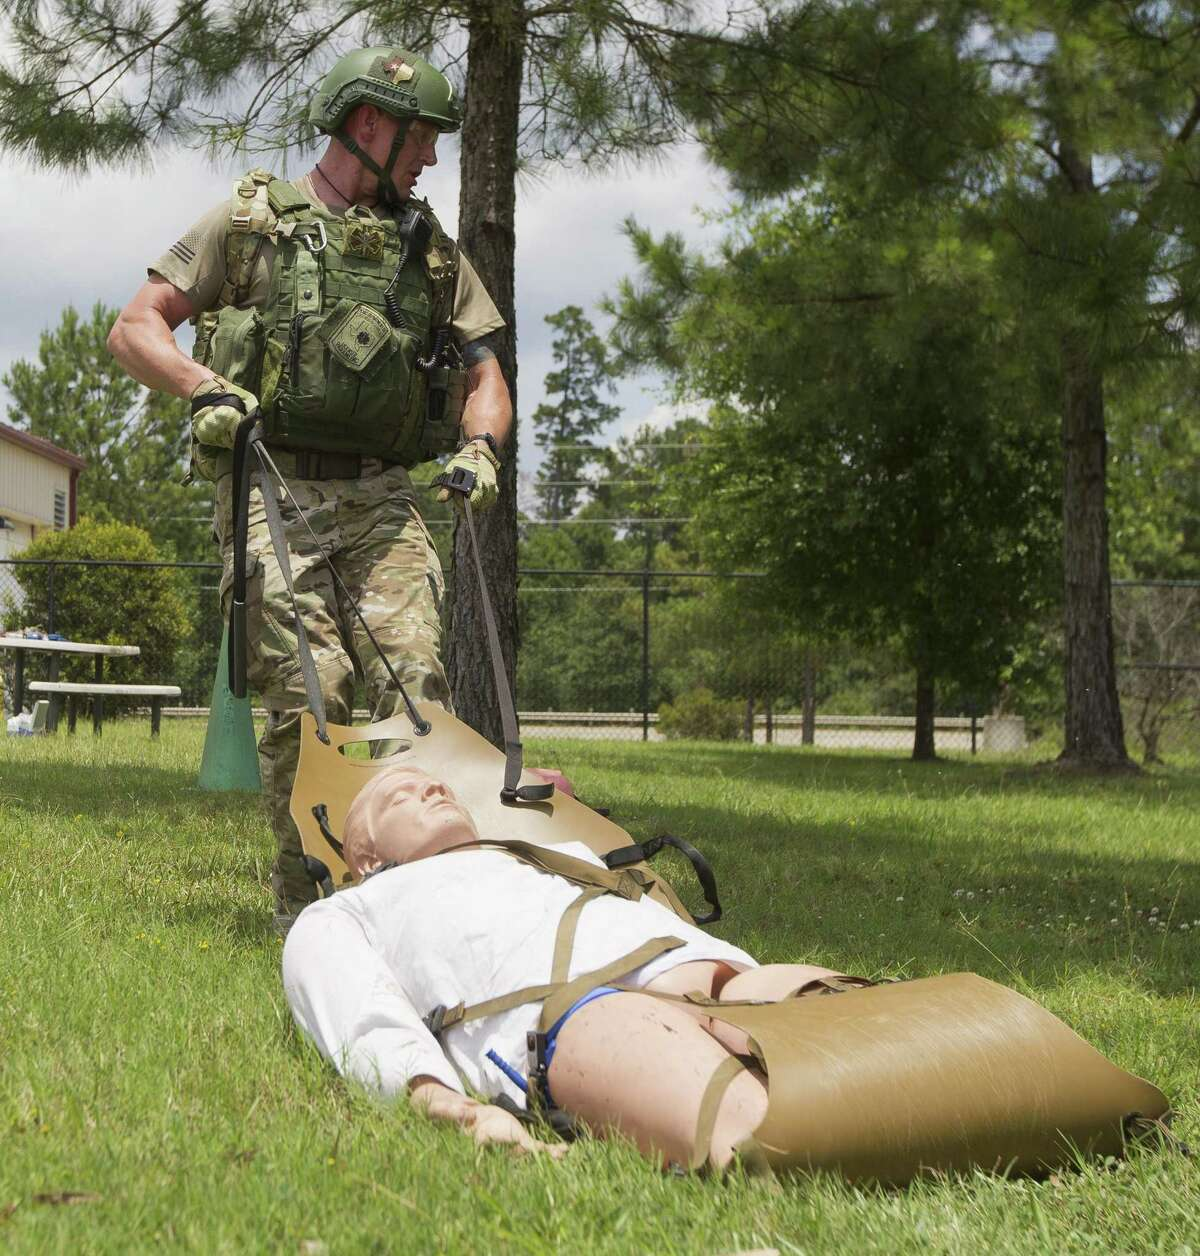 Medic Mike Joublanc transport a manikin after applying a tourniquet as members of the Montgomery County Hospital District's EMS SWAT team takes part in emergency scenarios as part of the group's monthly training, Monday, June 10, 2019, in Conroe.